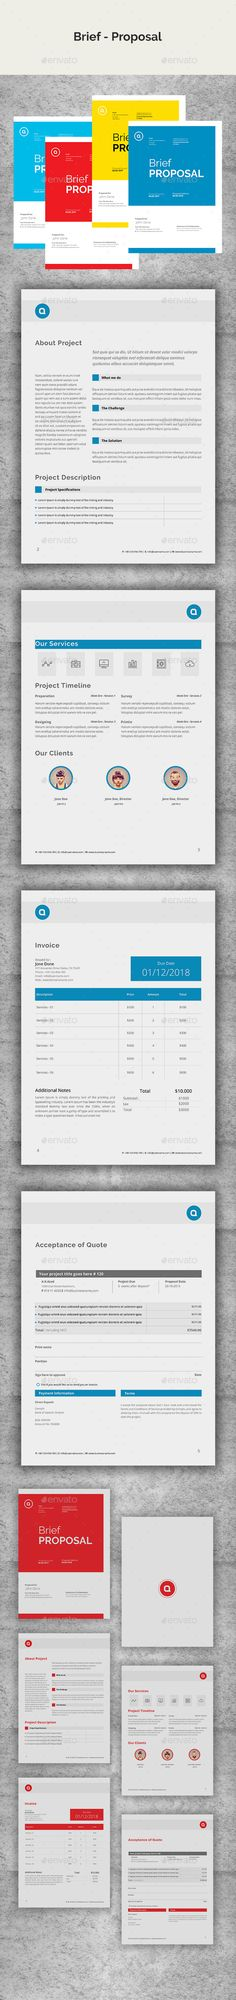 Great Invoice Design Template  Design Biz    Invoice